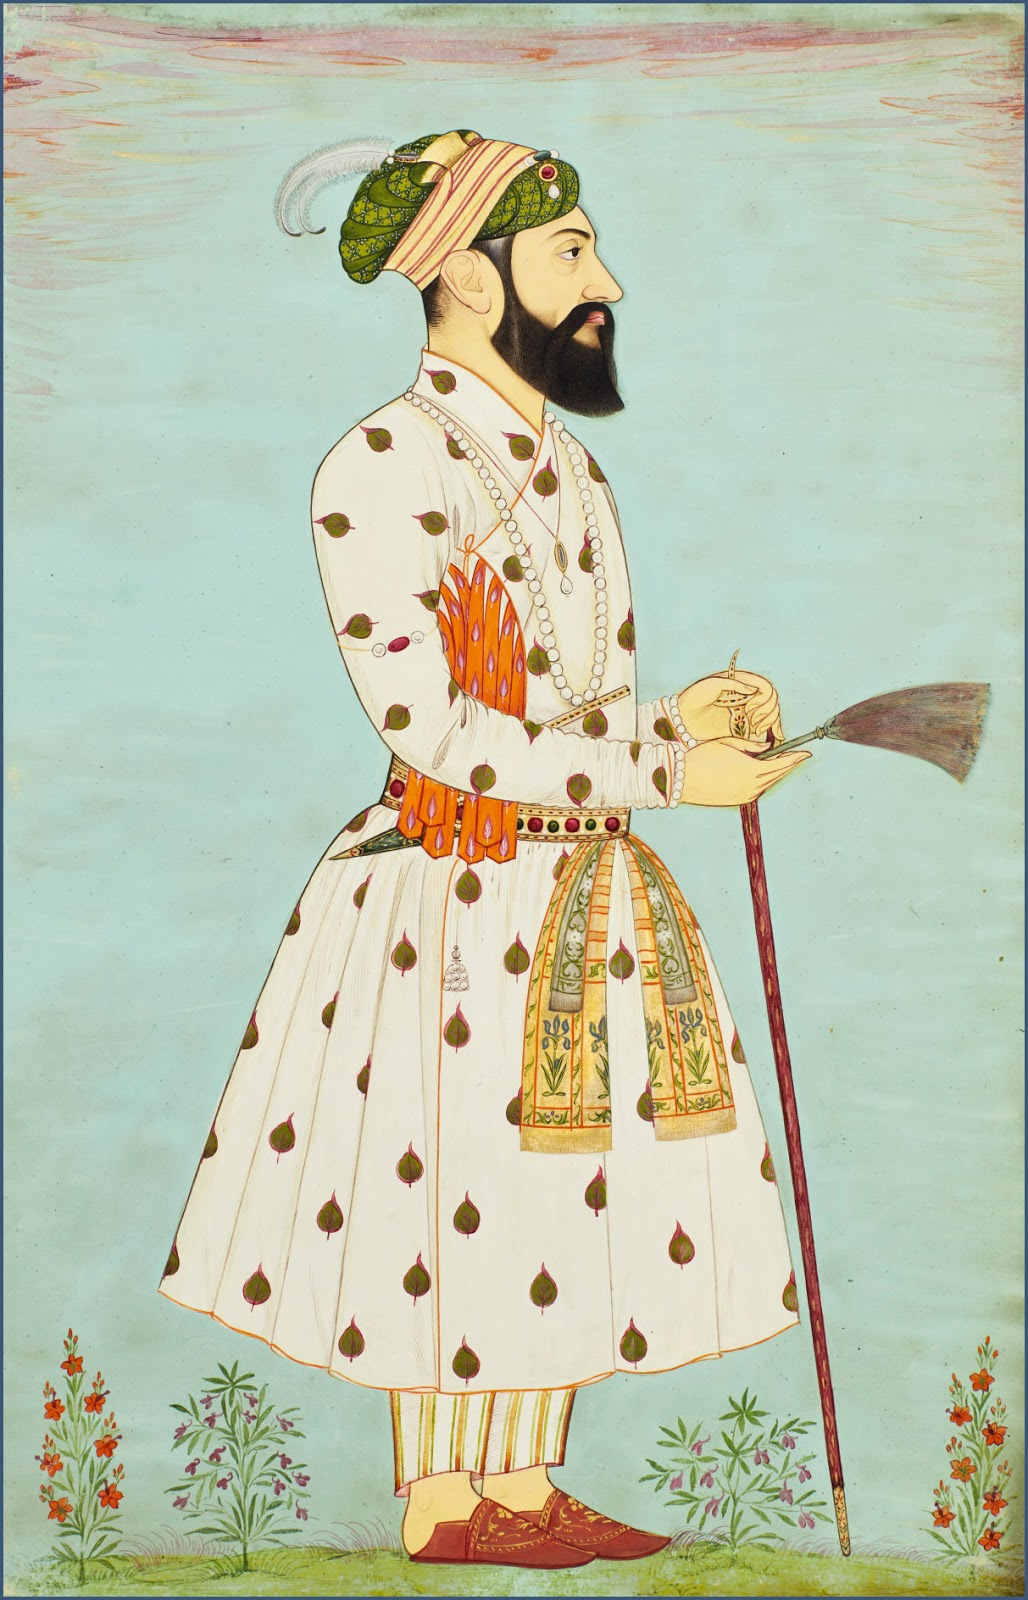 mughal empire under aurangzeb Aurangzeb and islamic rule in india over 150 years later when aurangzeb took power, the mughal empire was at is pinnacle the first muslim army to come to india in 711 under muhammad bin qasim promised religious freedom and security of temples to hindus and buddhists.